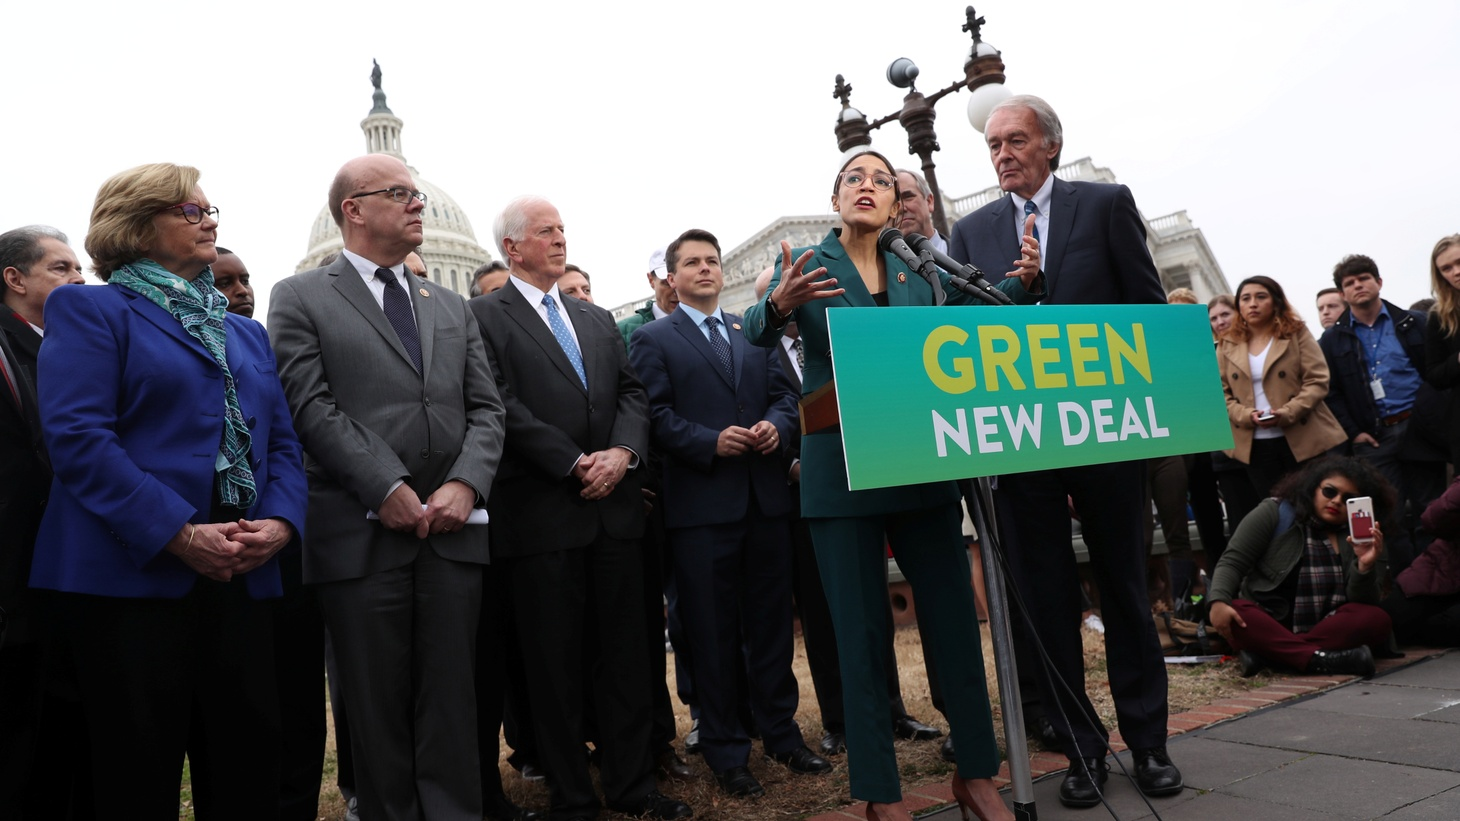 "U.S. Representative Alexandria Ocasio-Cortez (D-NY) and Senator Ed Markey (D-MA) hold a news conference for their proposed ""Green New Deal"" to achieve net-zero greenhouse gas emissions in 10 years, at the U.S. Capitol in Washington, U.S. February 7, 2019."